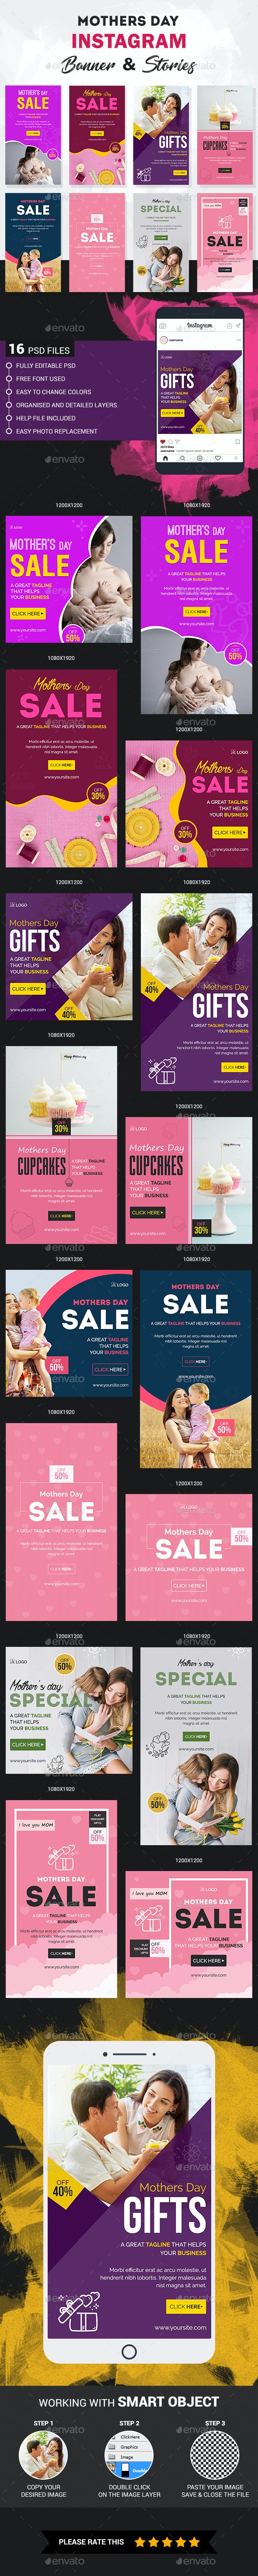 Mother's day Instagram Story and Banner Templates - Social Media Web Elements